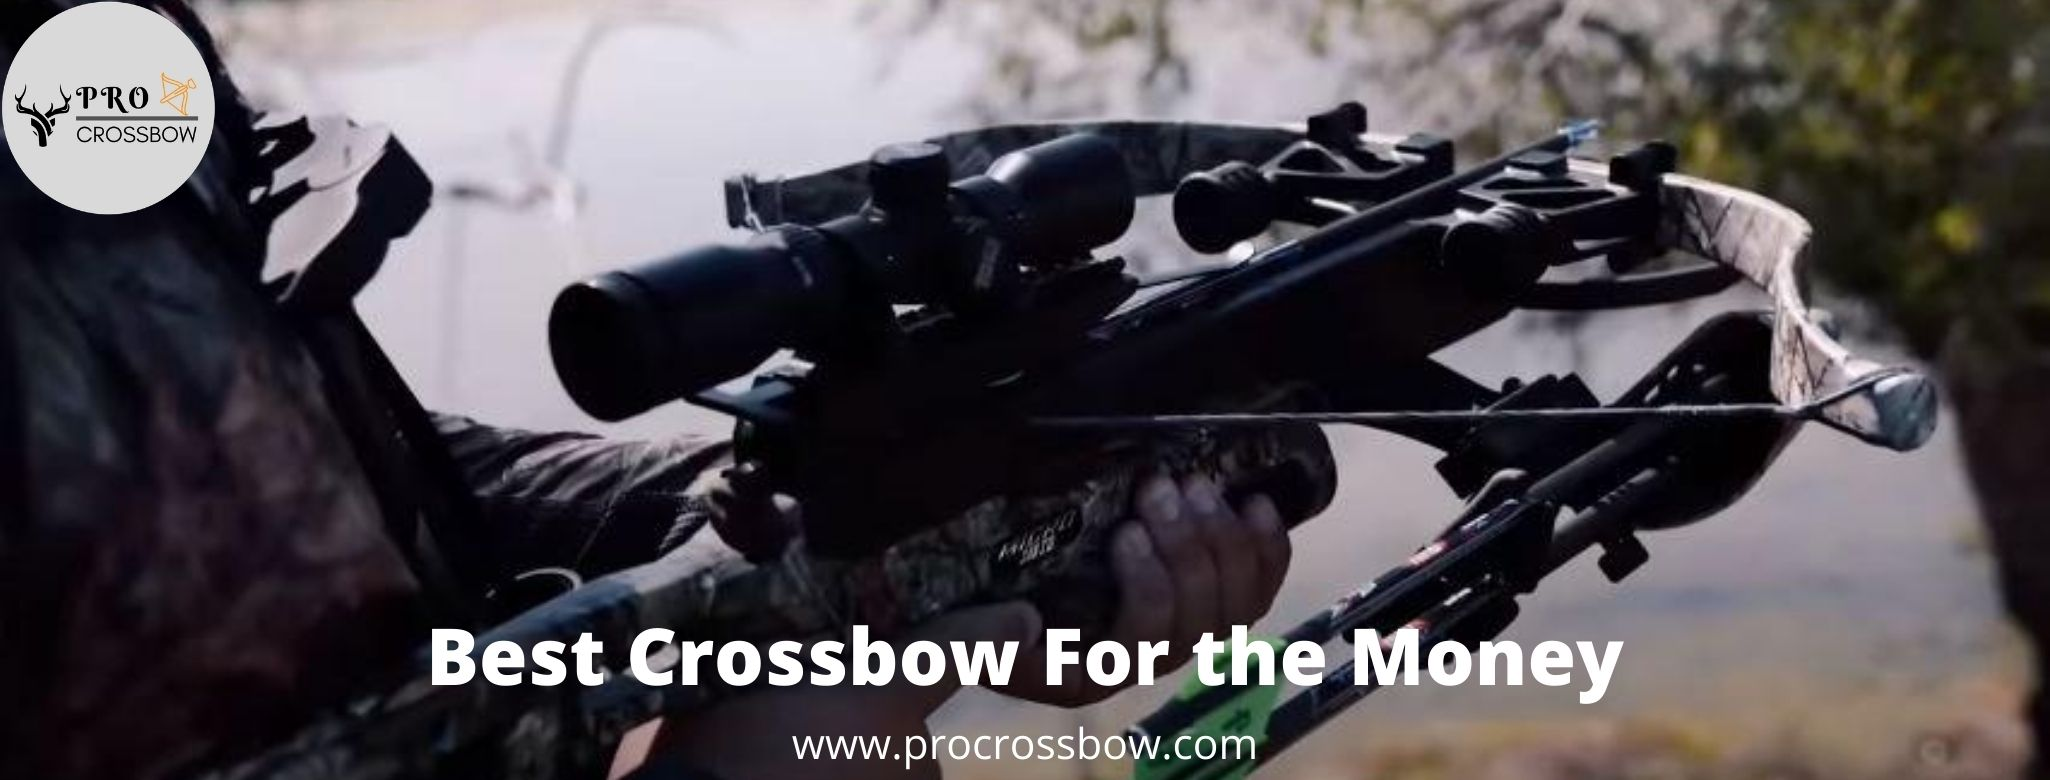 best budget friendly crossbow